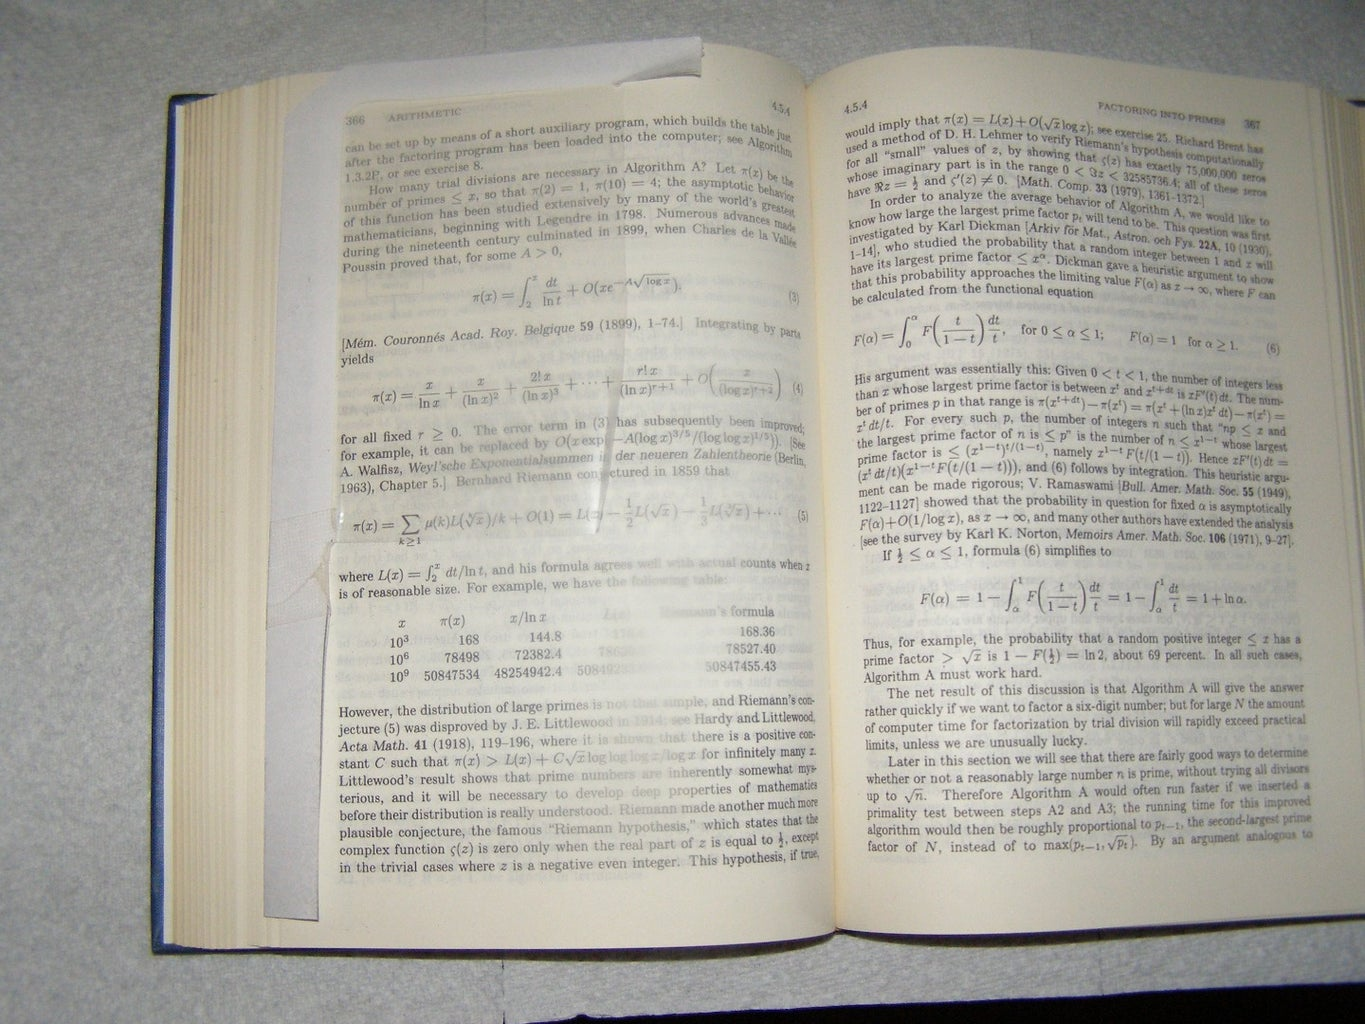 Illustration of Bookmark in Use